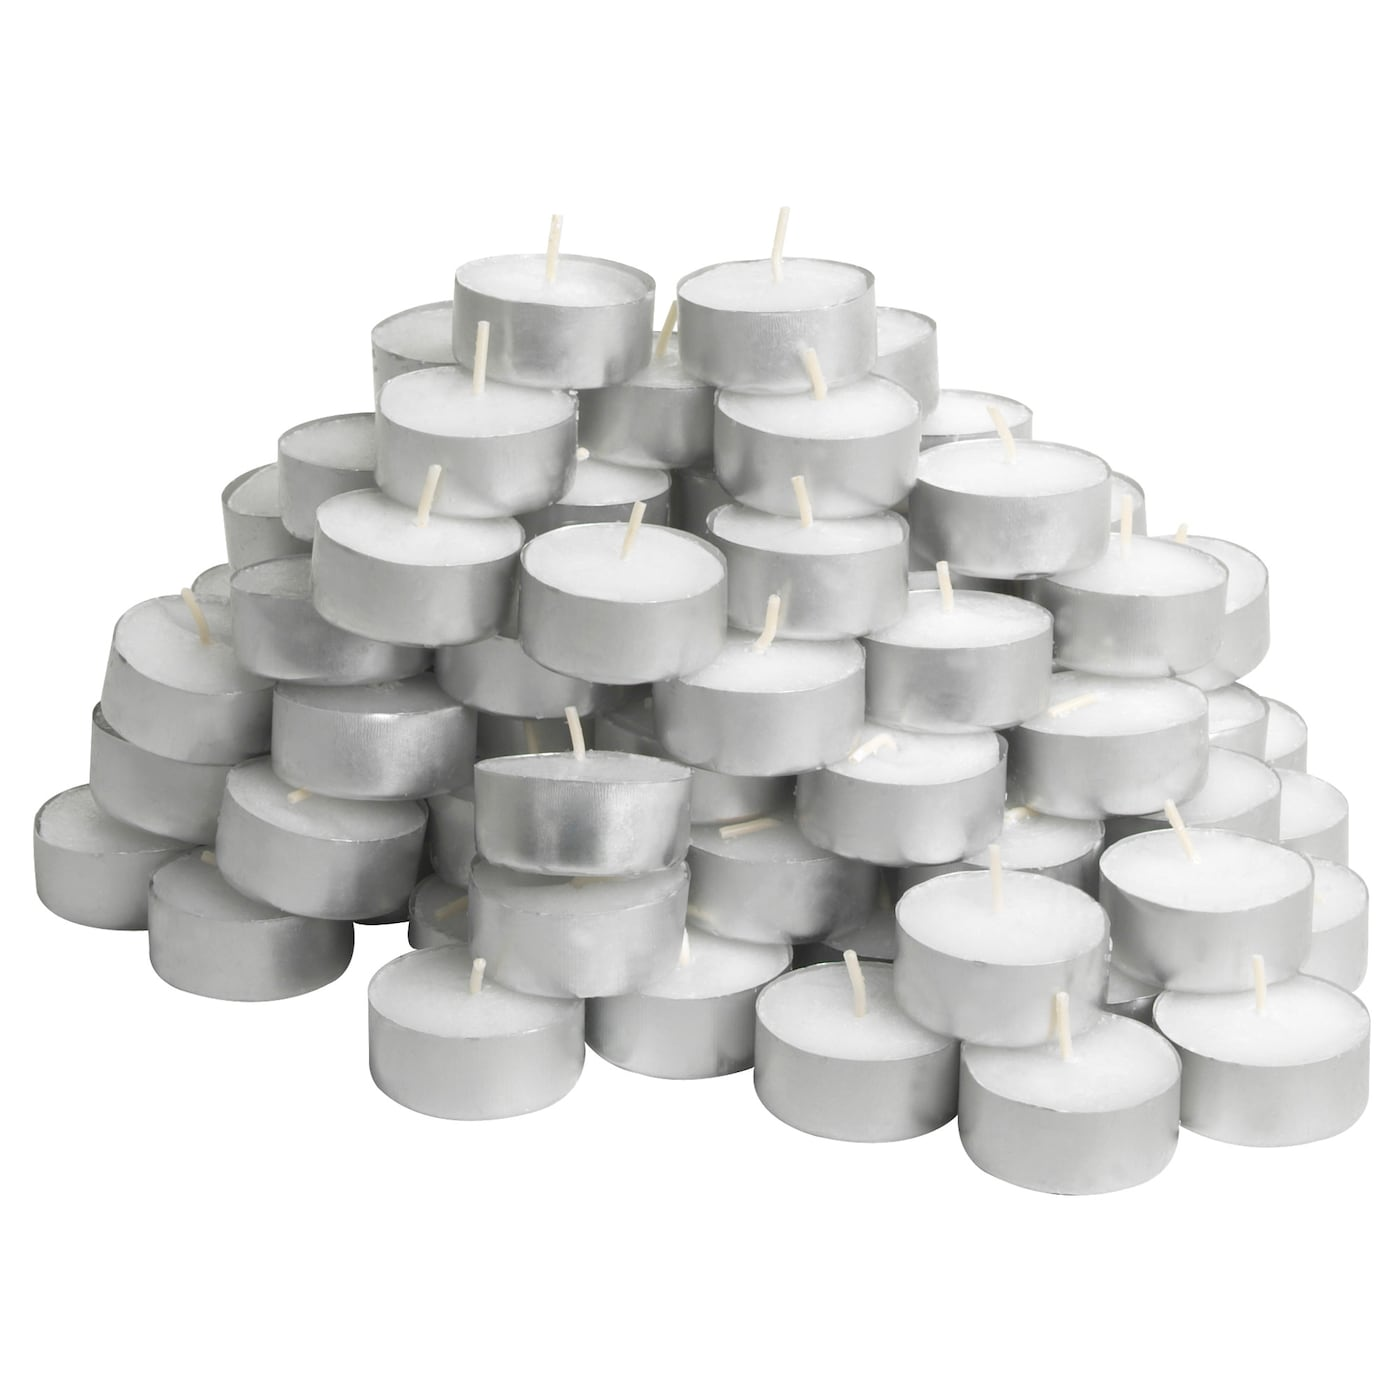 IKEA GLIMMA unscented tealight